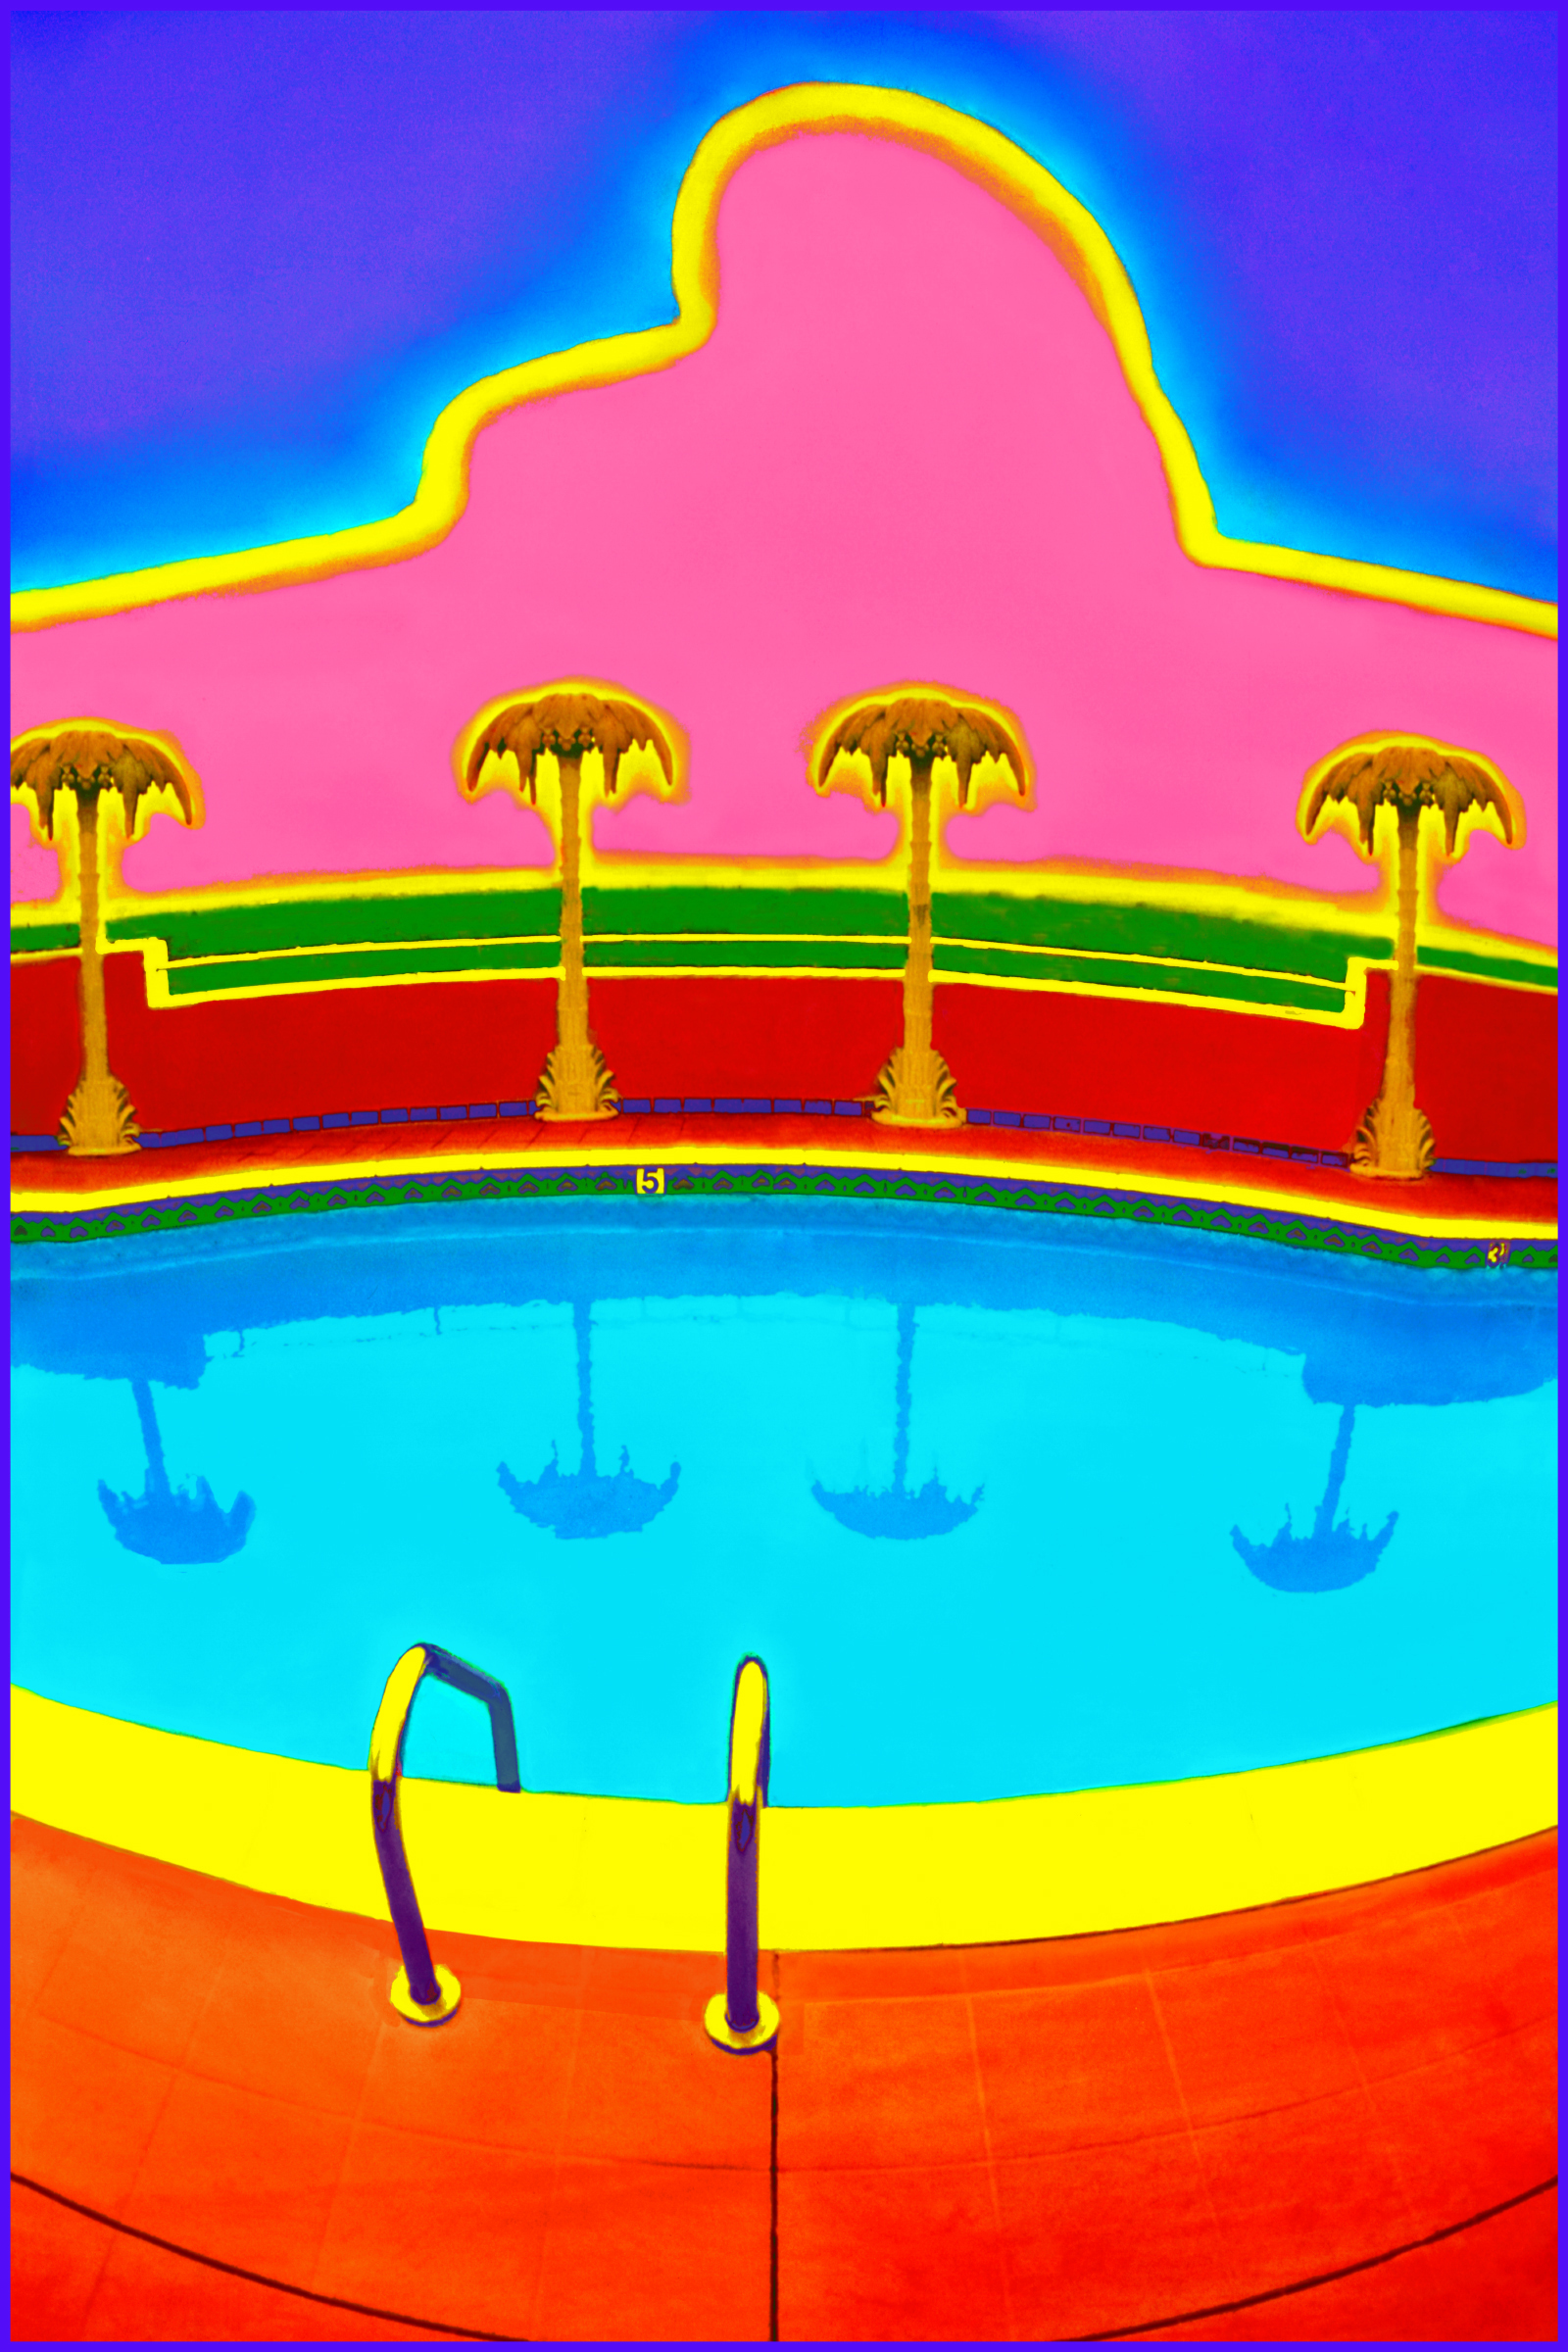 Title: Hollywood Pool Medium: Photoshop enhanced photography Size: 30 x 20